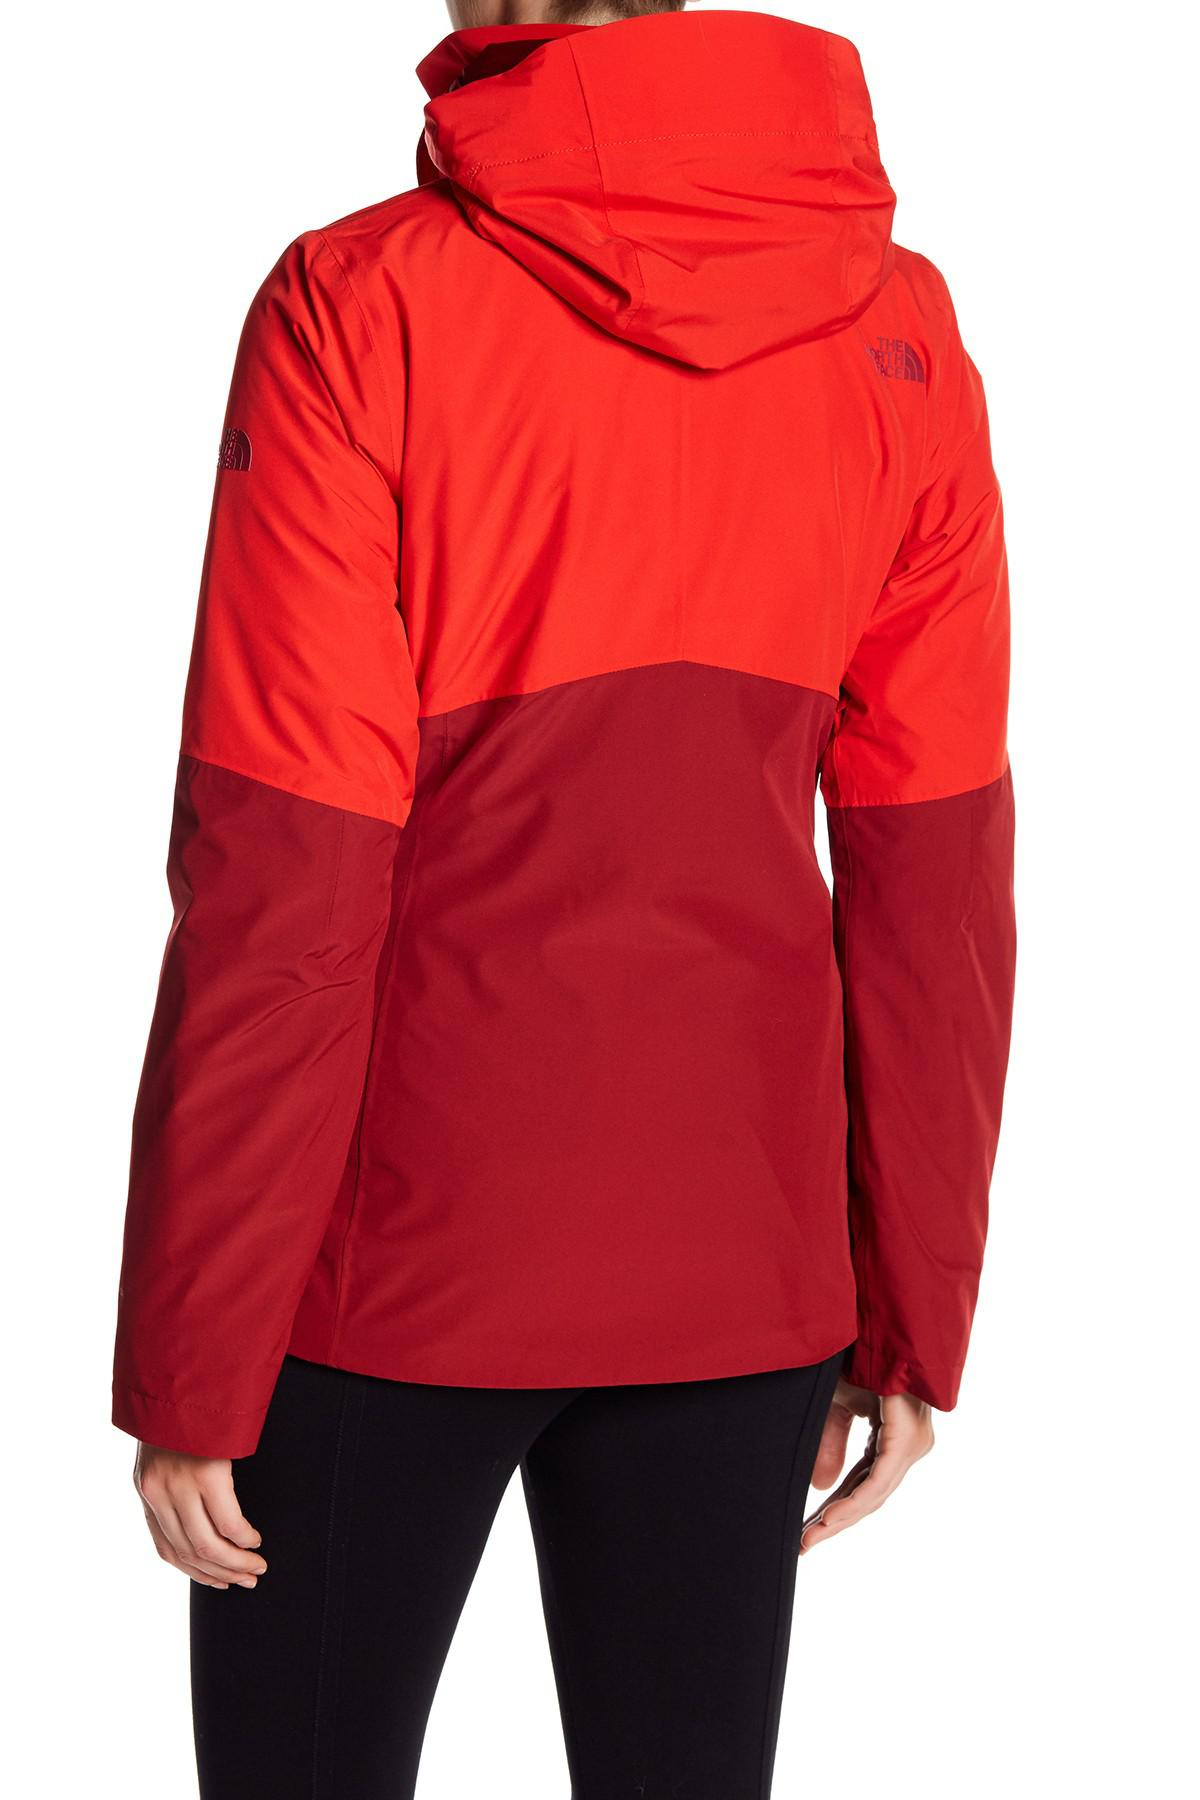 452ef1c9c2932 The North Face Garner Triclimate Water Resistant Jacket in Red - Lyst